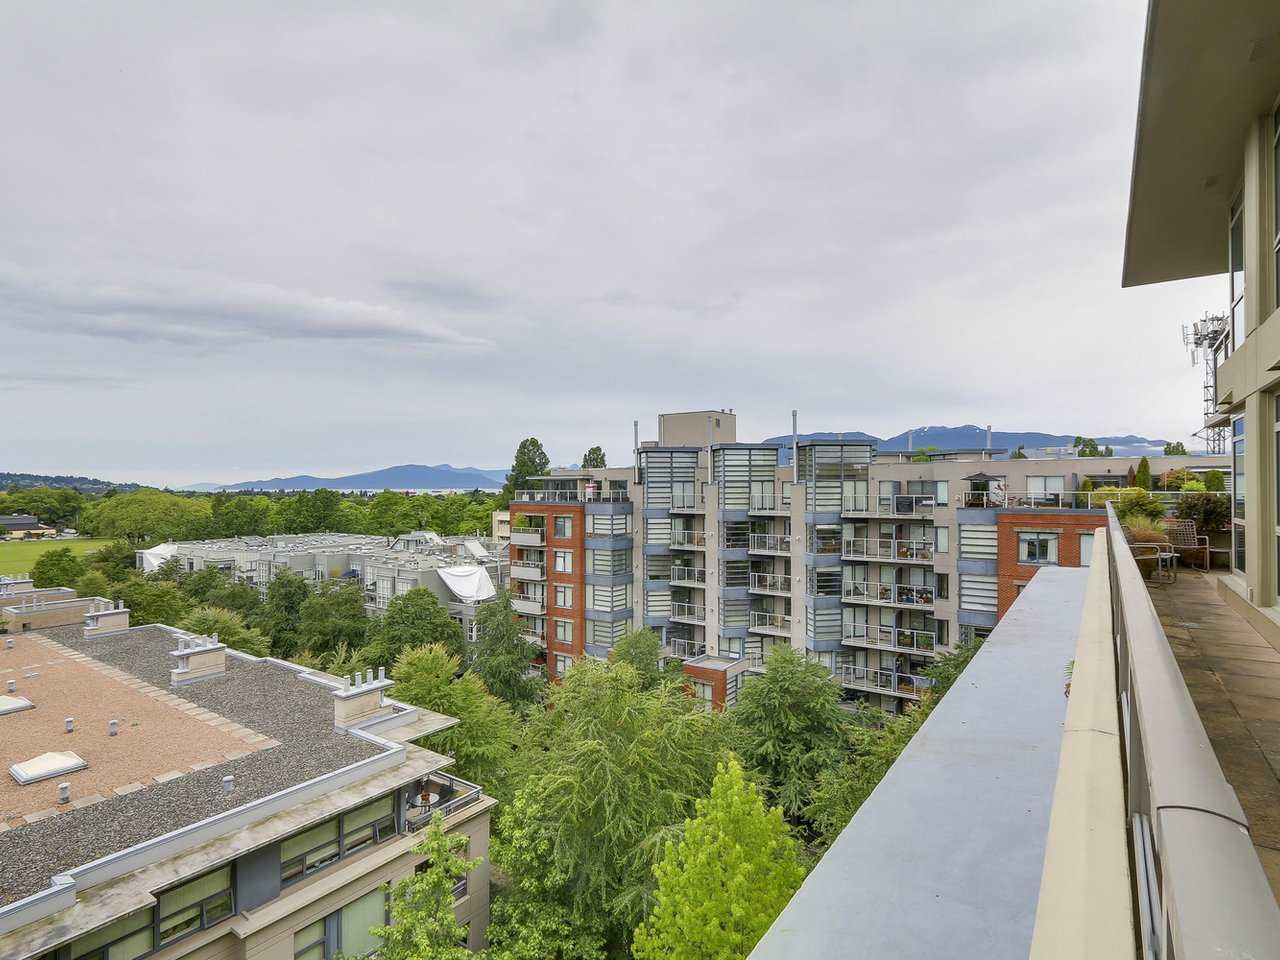 "Photo 8: 701 2799 YEW Street in Vancouver: Kitsilano Condo for sale in ""TAPESTRY AT ARBUTUS WALK (O'Keefe)"" (Vancouver West)  : MLS(r) # R2178410"